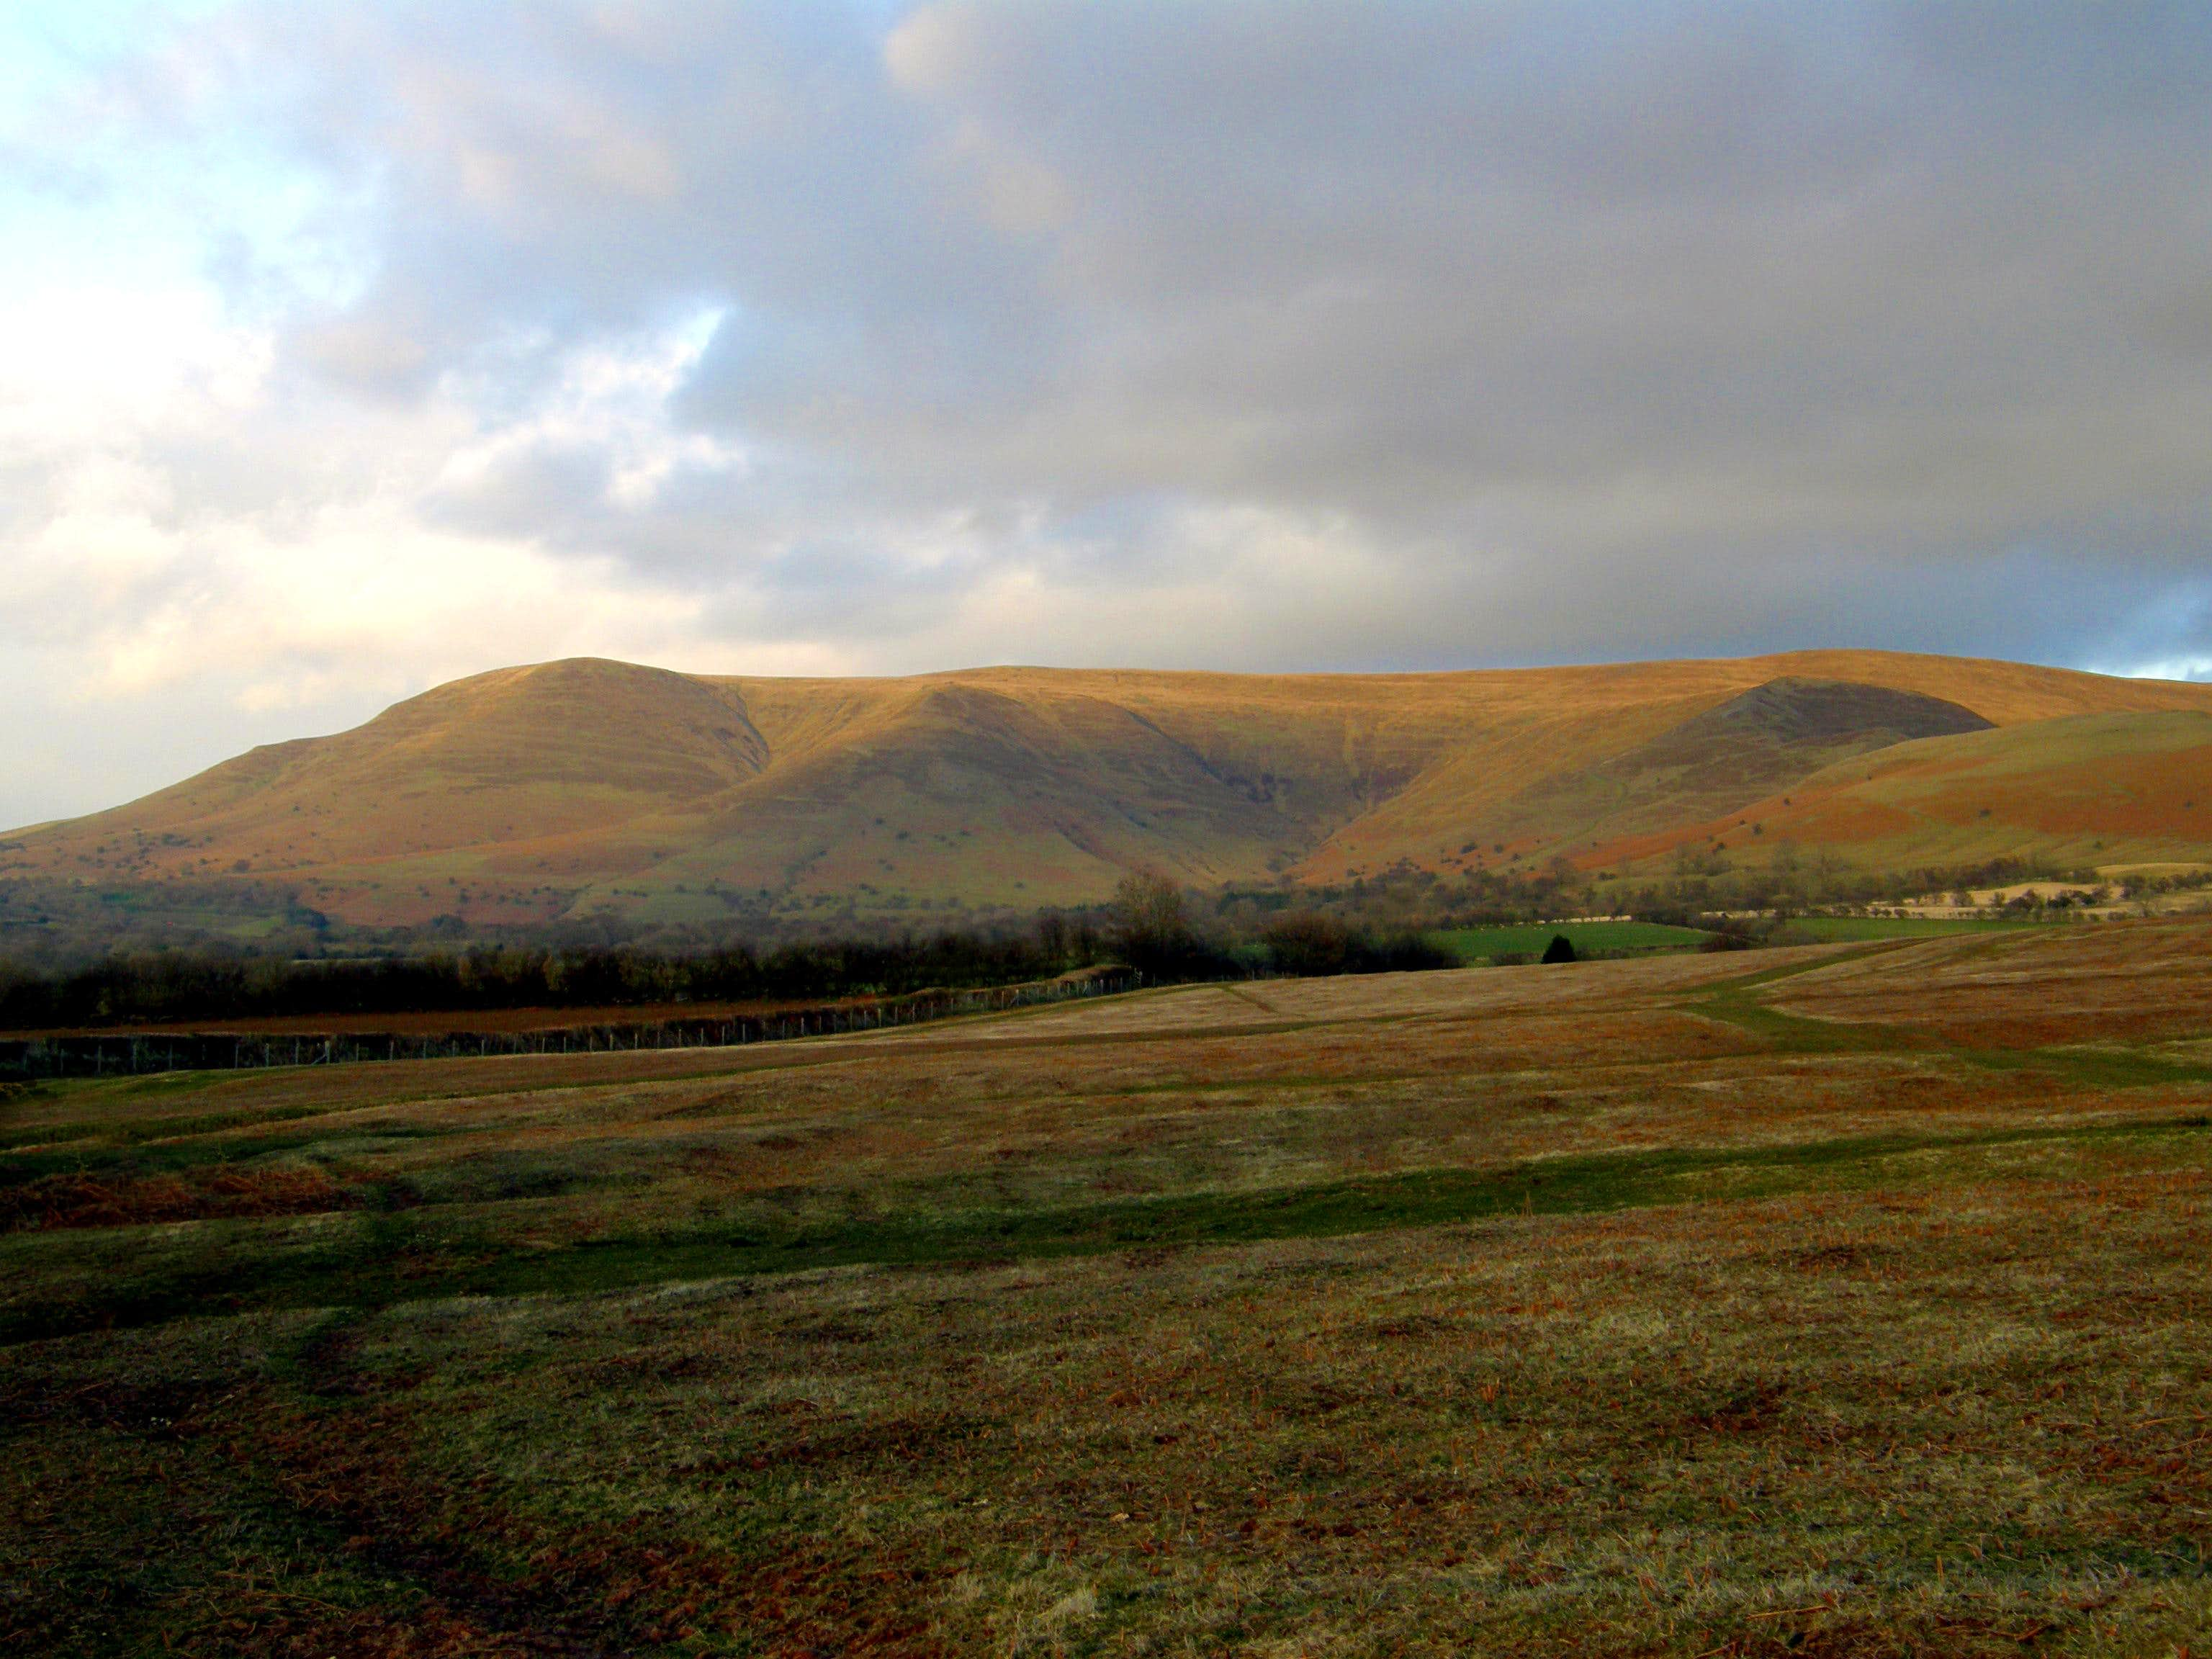 The Black Mountains